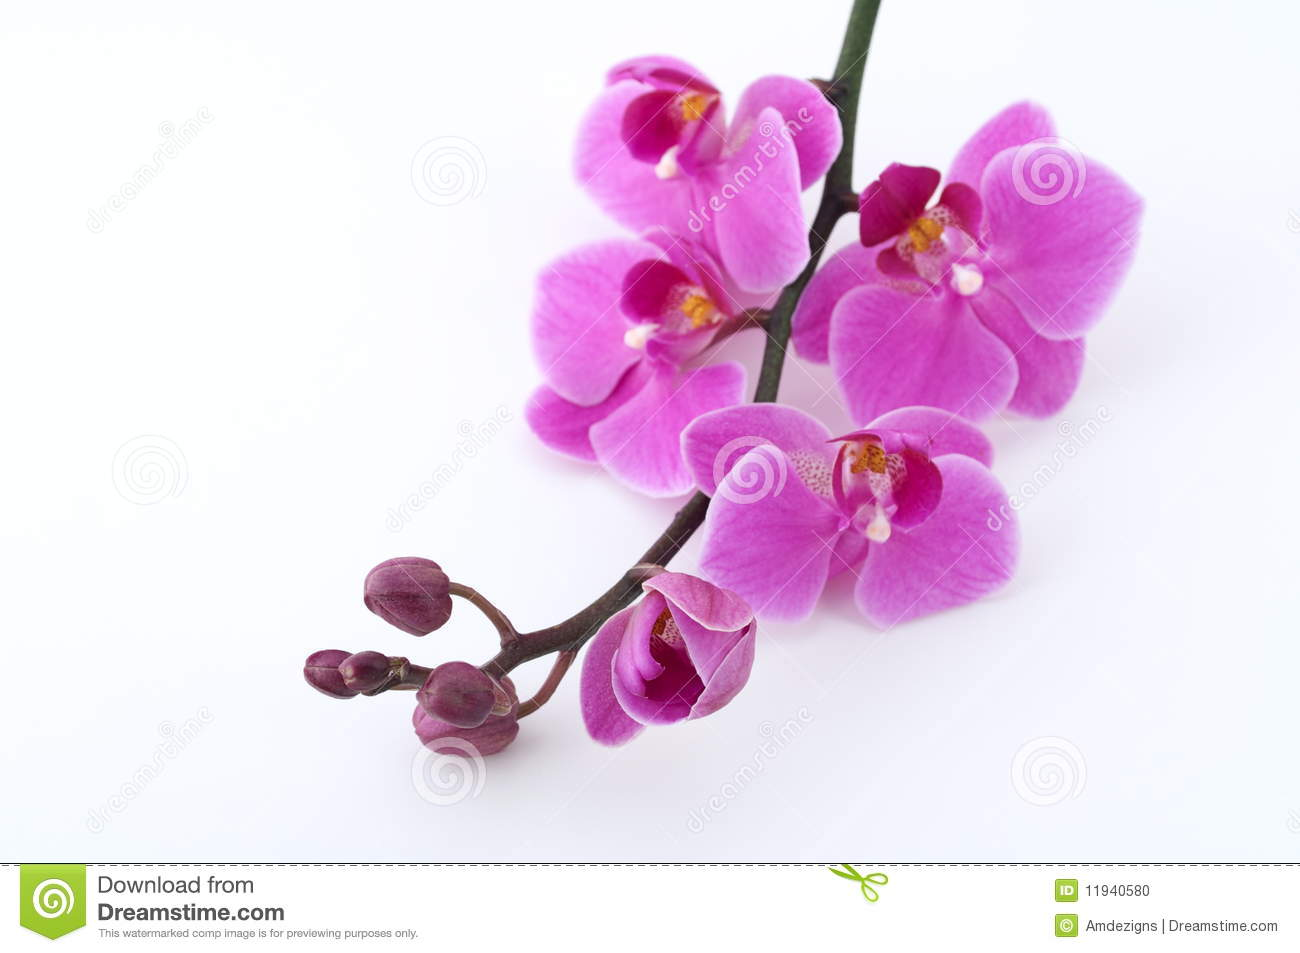 Red Mac Wallpaper moreover Rhombus together with Burst Purple Sunburst Rays Cyan C2 17f8fc 9932cc K2 0 75 L2 4 0 A 45 F 22 Image in addition White Orchids further Rose Wallpaper. on orchid background wallpaper